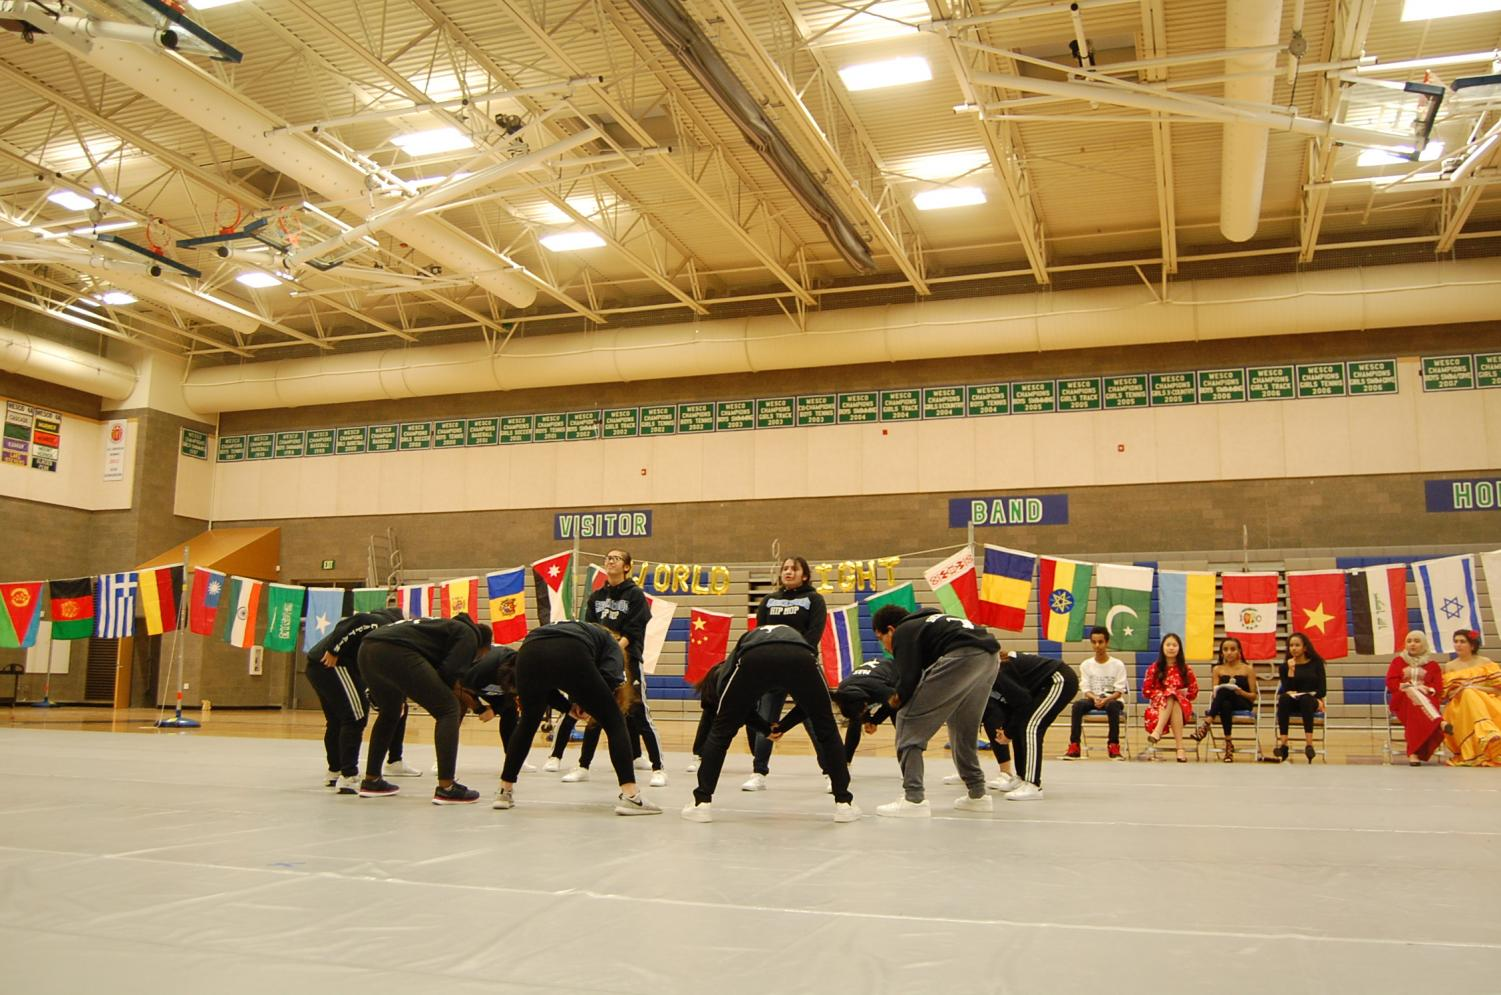 The+Hip+Hop+team+performs+the+same+routine+they+took+to+the+WIAA+state+dance+competition.